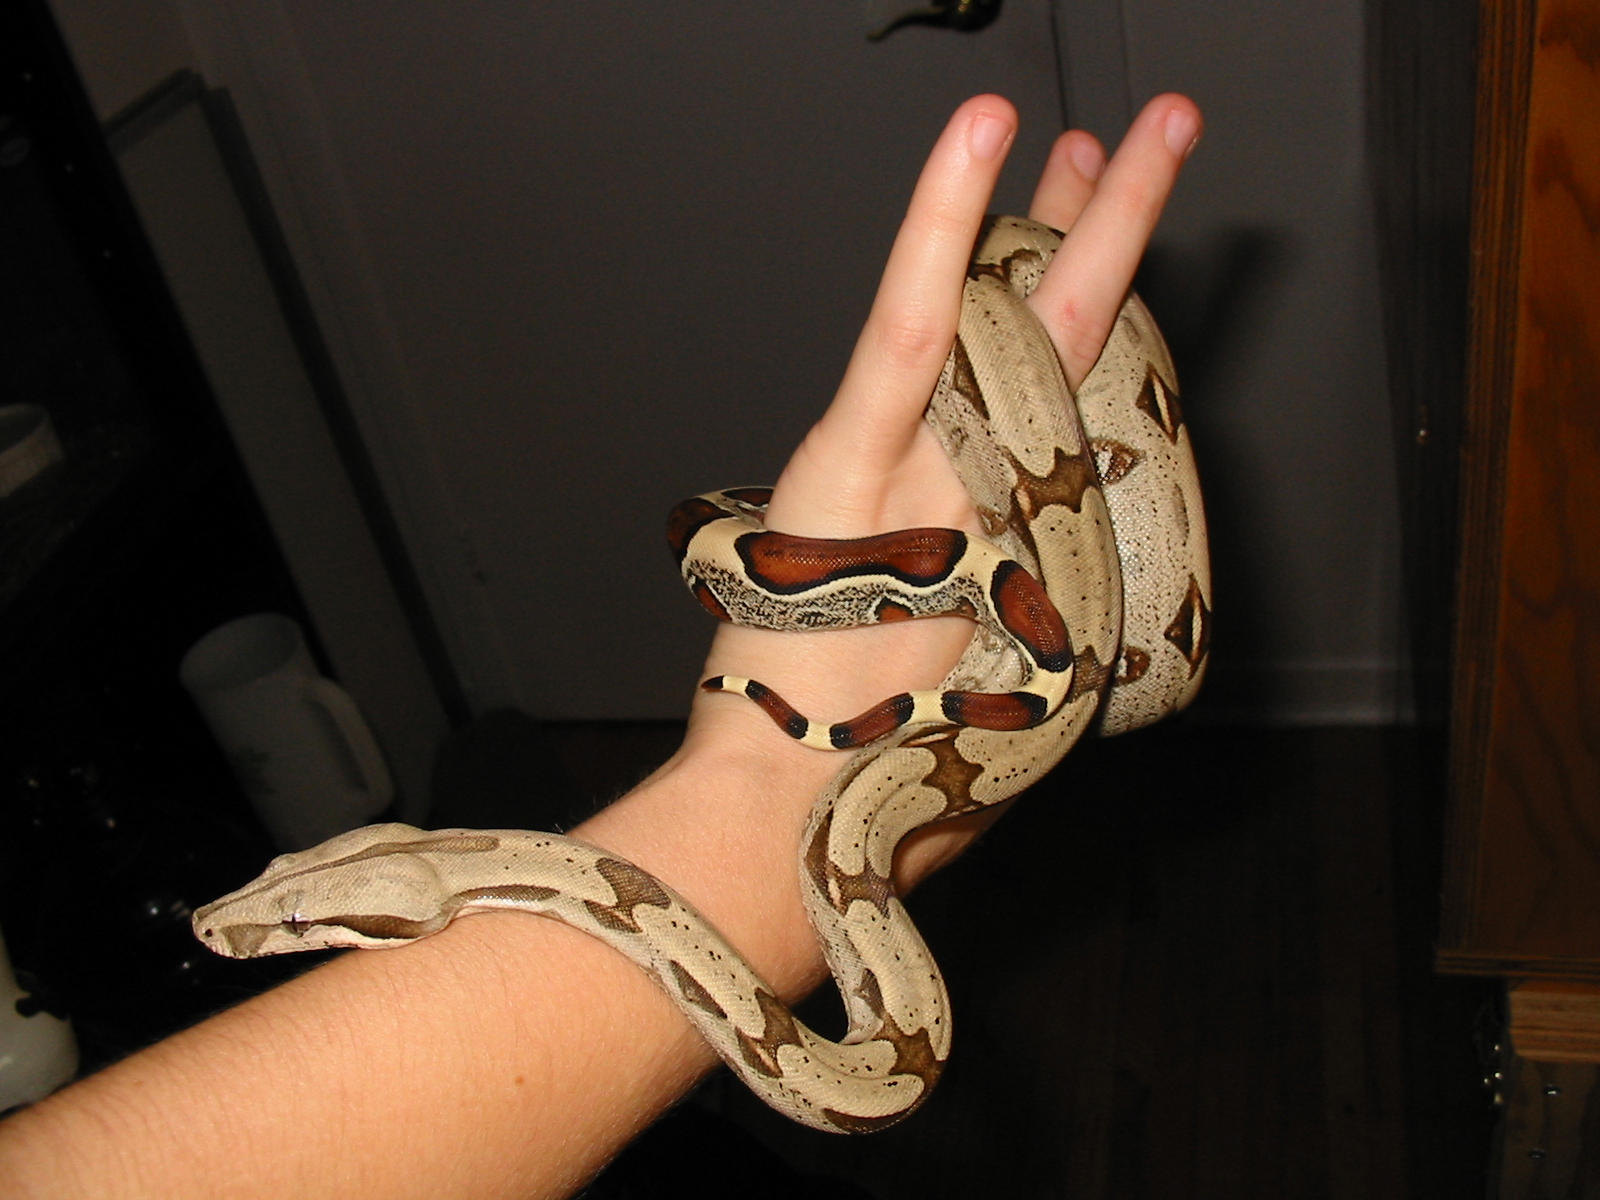 Red-Tailed Boa by poisonous